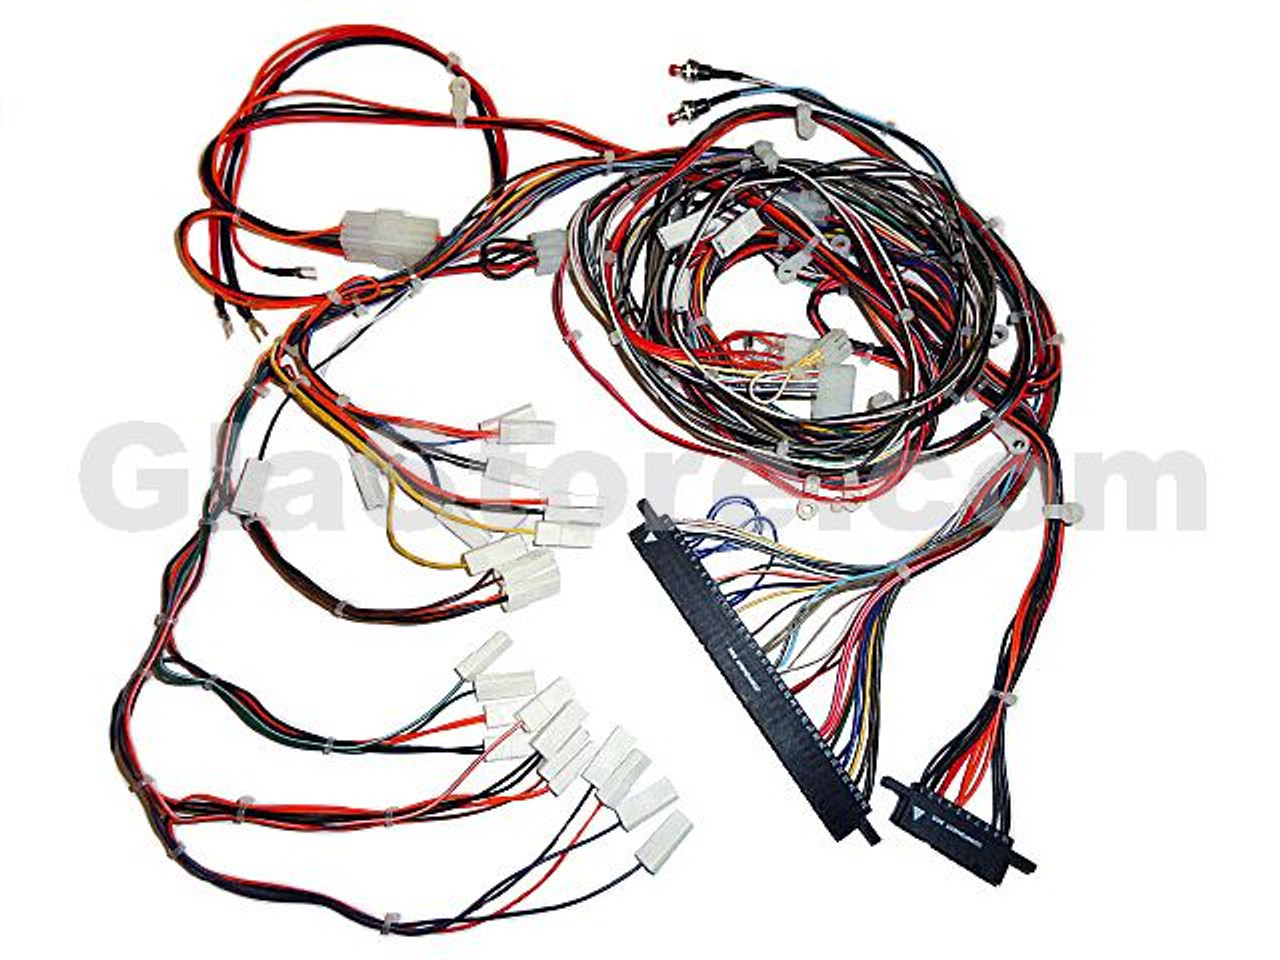 Standard 8 Liner Cherry Master Wiring Harness - Great Lakes Amut